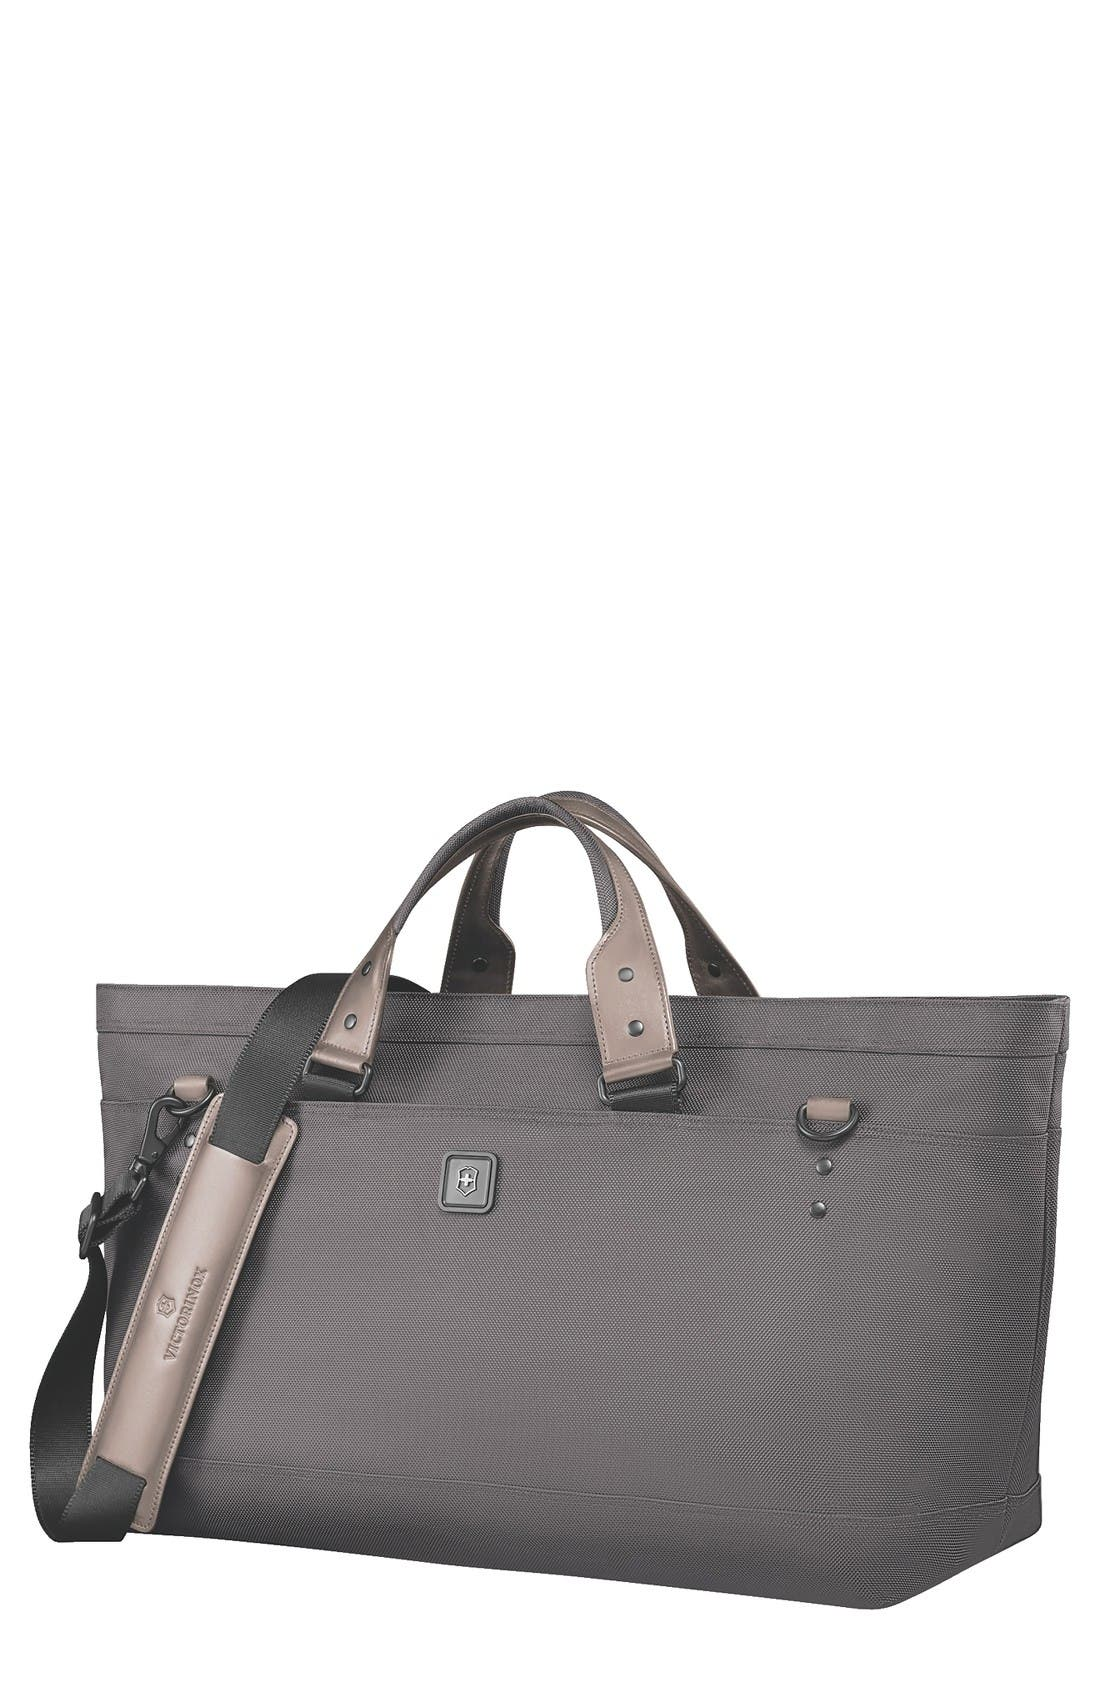 VICTORINOX SWISS ARMY<SUP>®</SUP> Lexicon 2.0 Deluxe Tote Bag